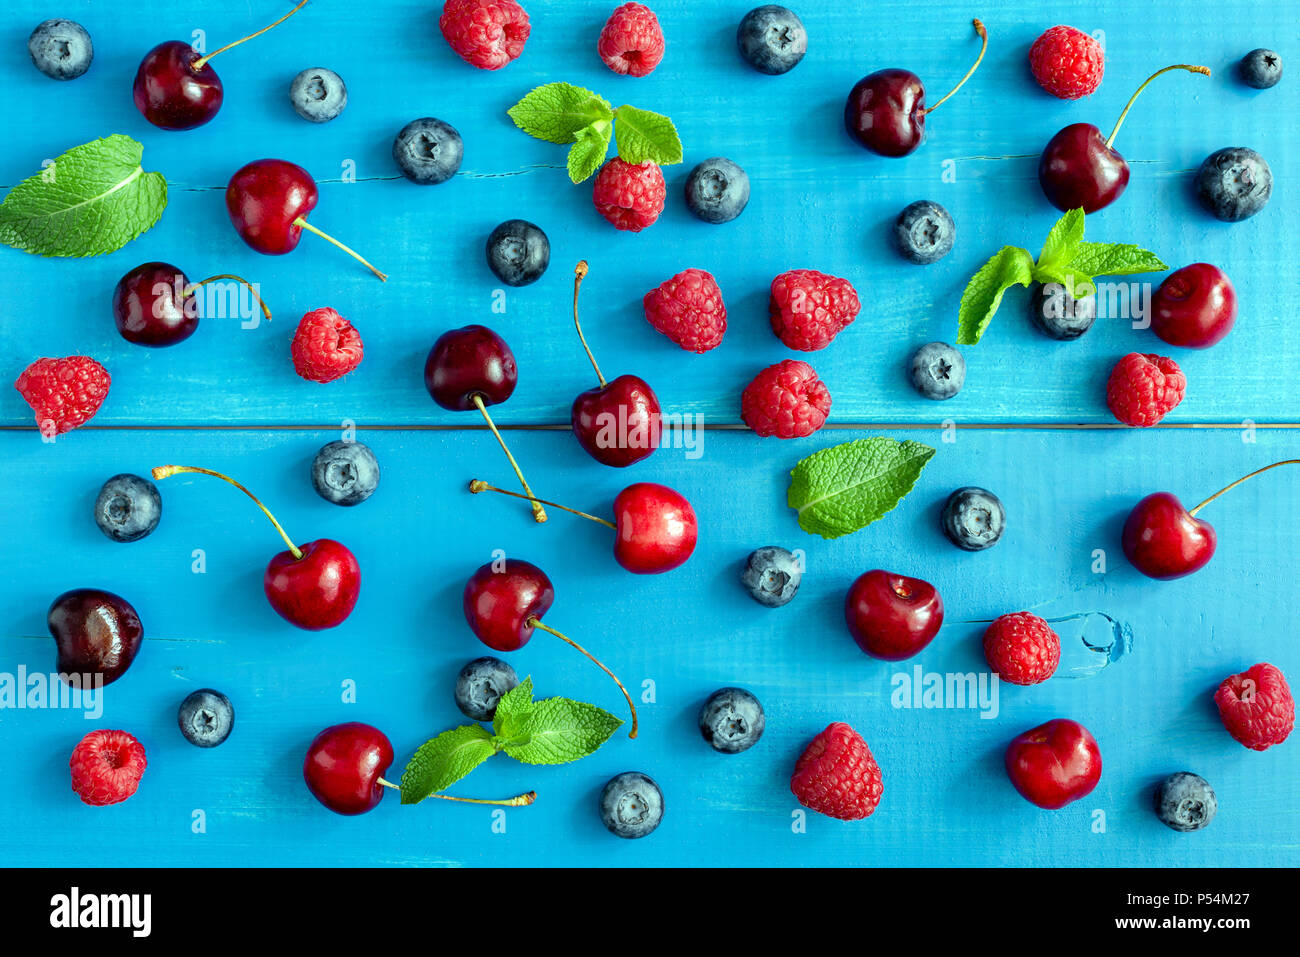 Berries on blue background, flat lay. Berry pattern on blue wood background. Raspberry, sweet cherry, blueberry and mint leaf pattern - Stock Image